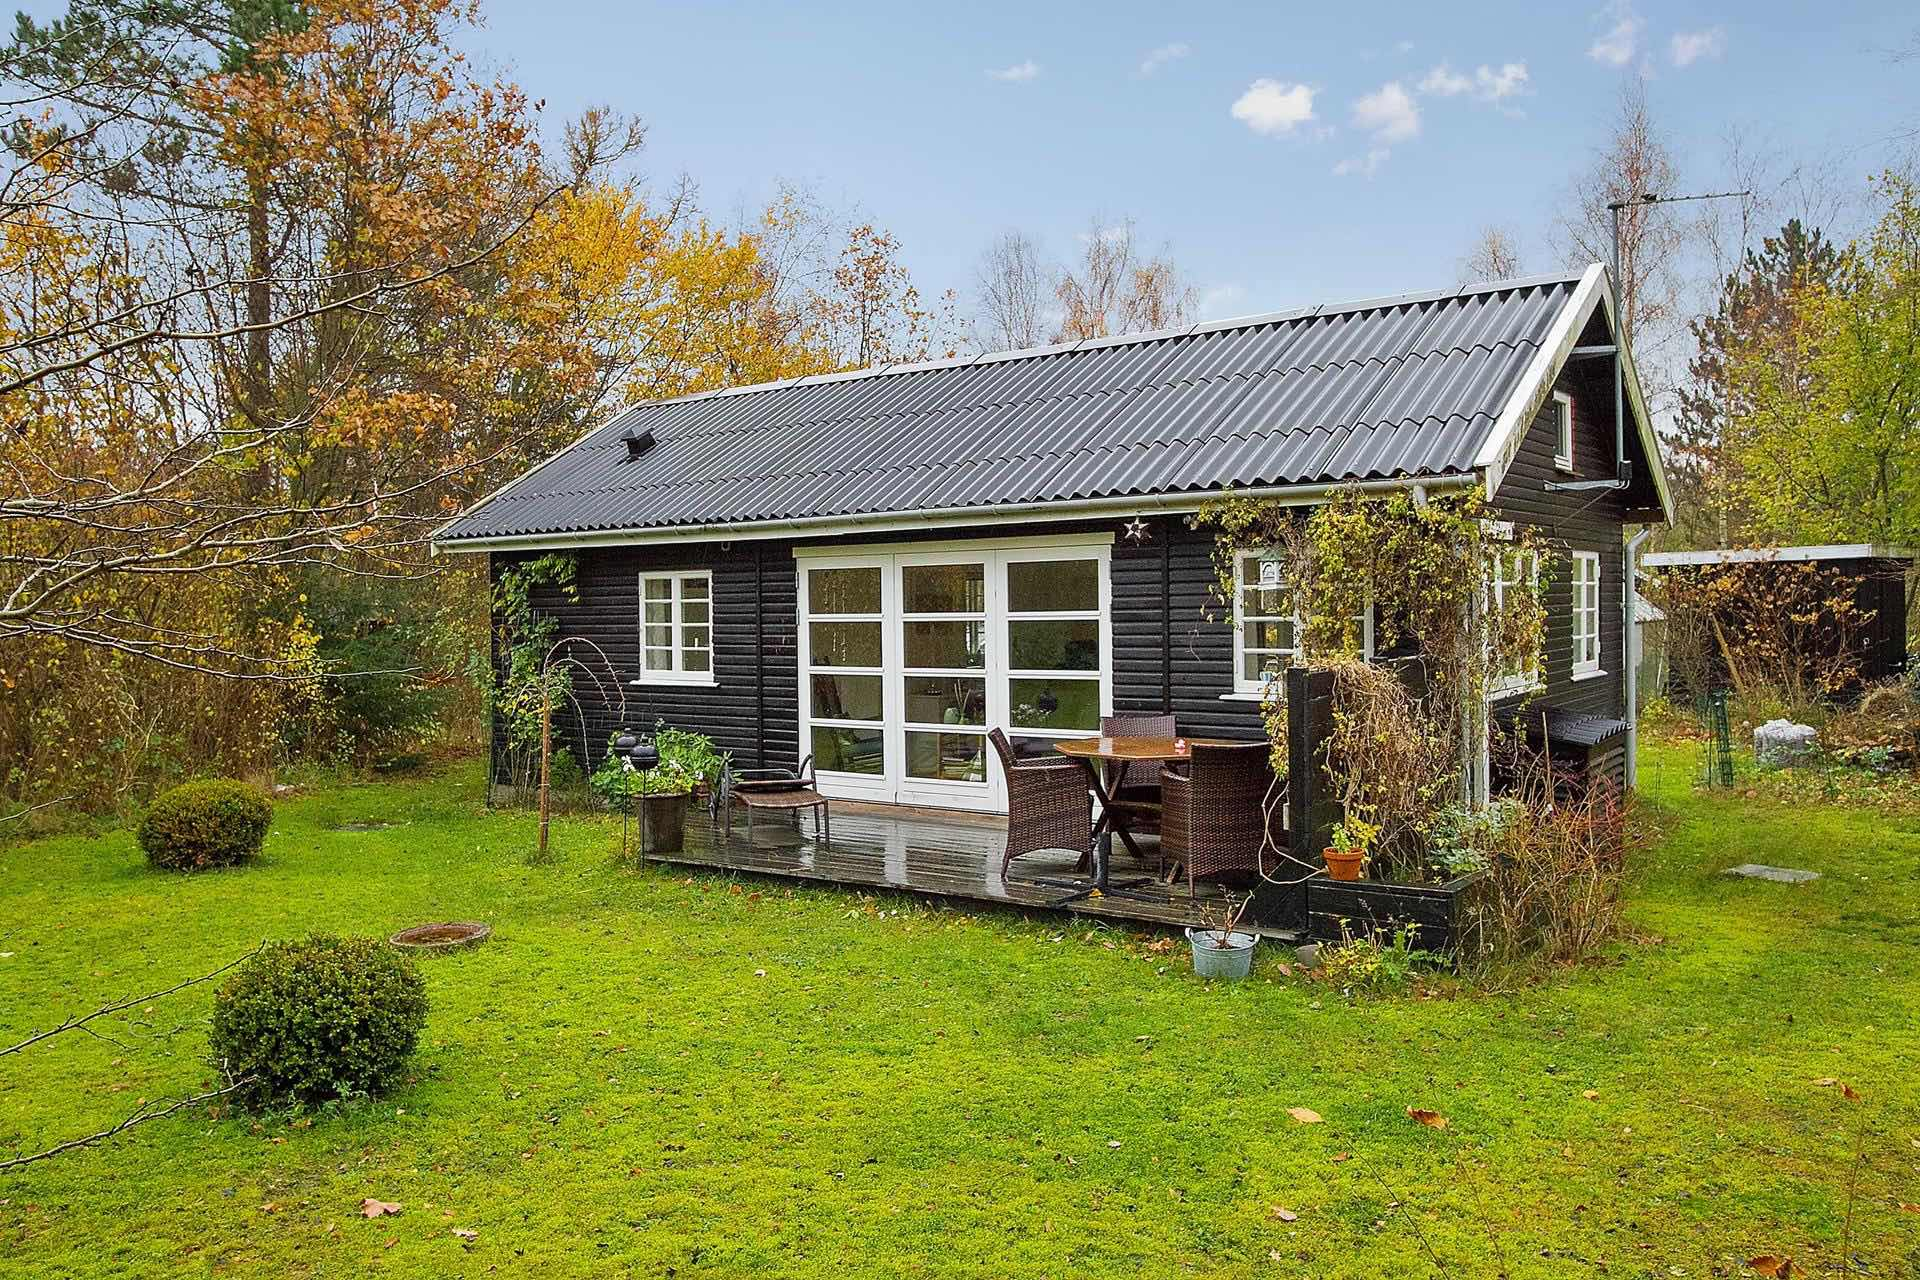 Black and white Danish summerhouse